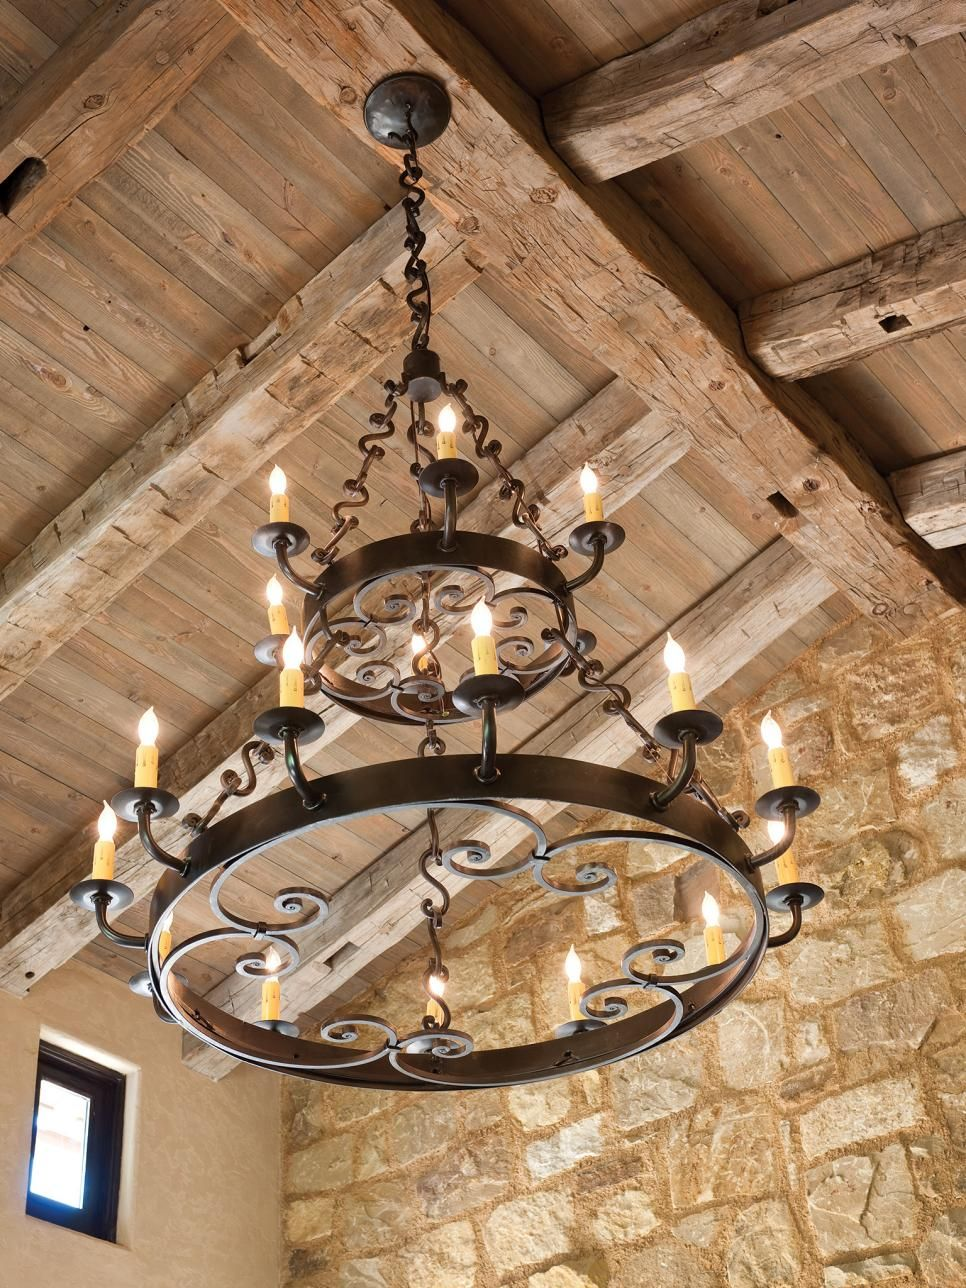 Search Viewer Large Rustic Chandeliers Iron Chandeliers Rustic